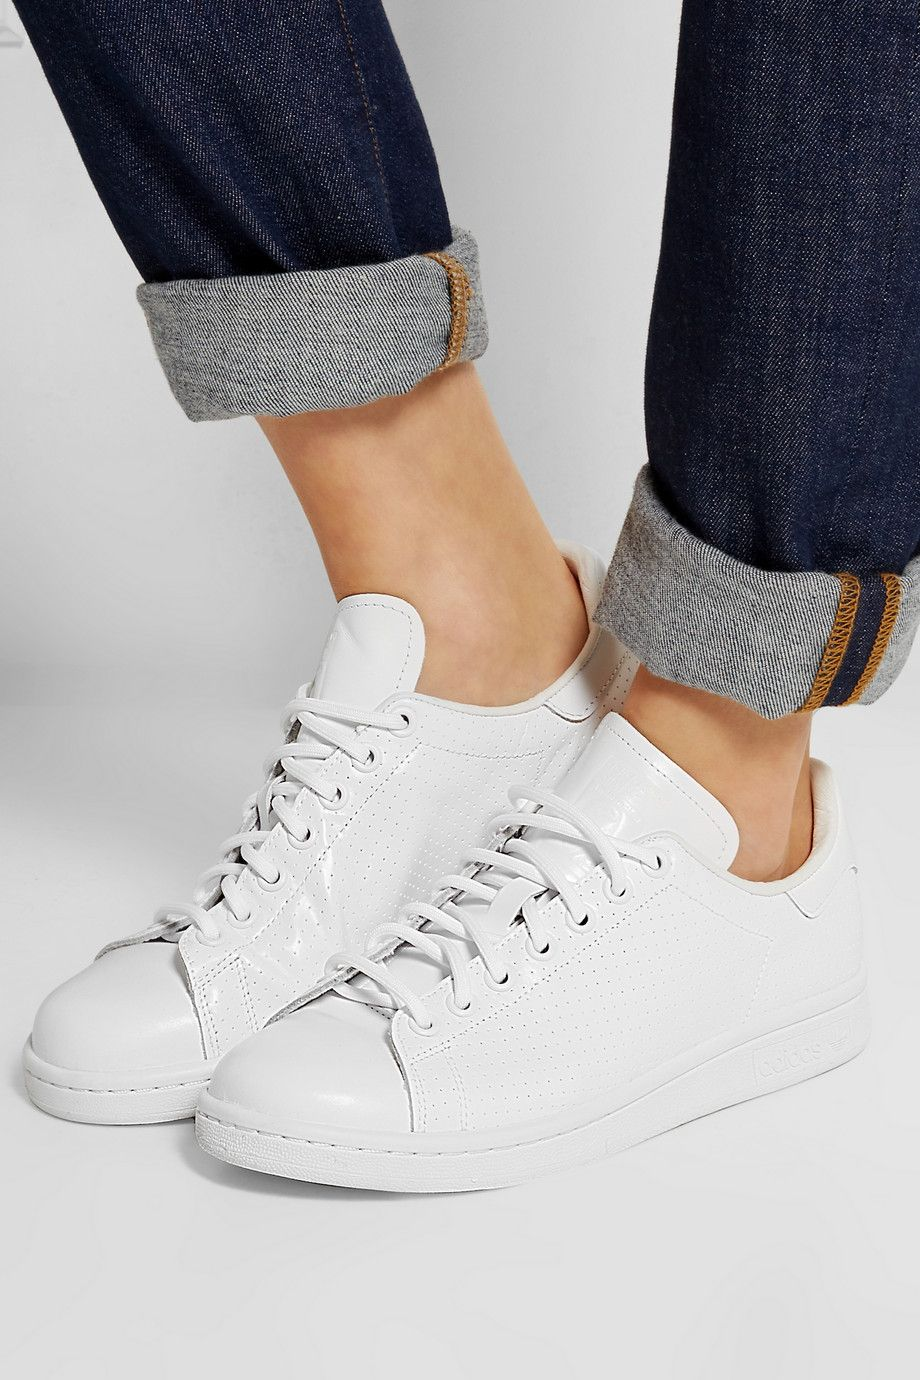 new concept c204f 89034 adidas Originals   Stan Smith perforated leather sneakers   NET-A-PORTER.COM